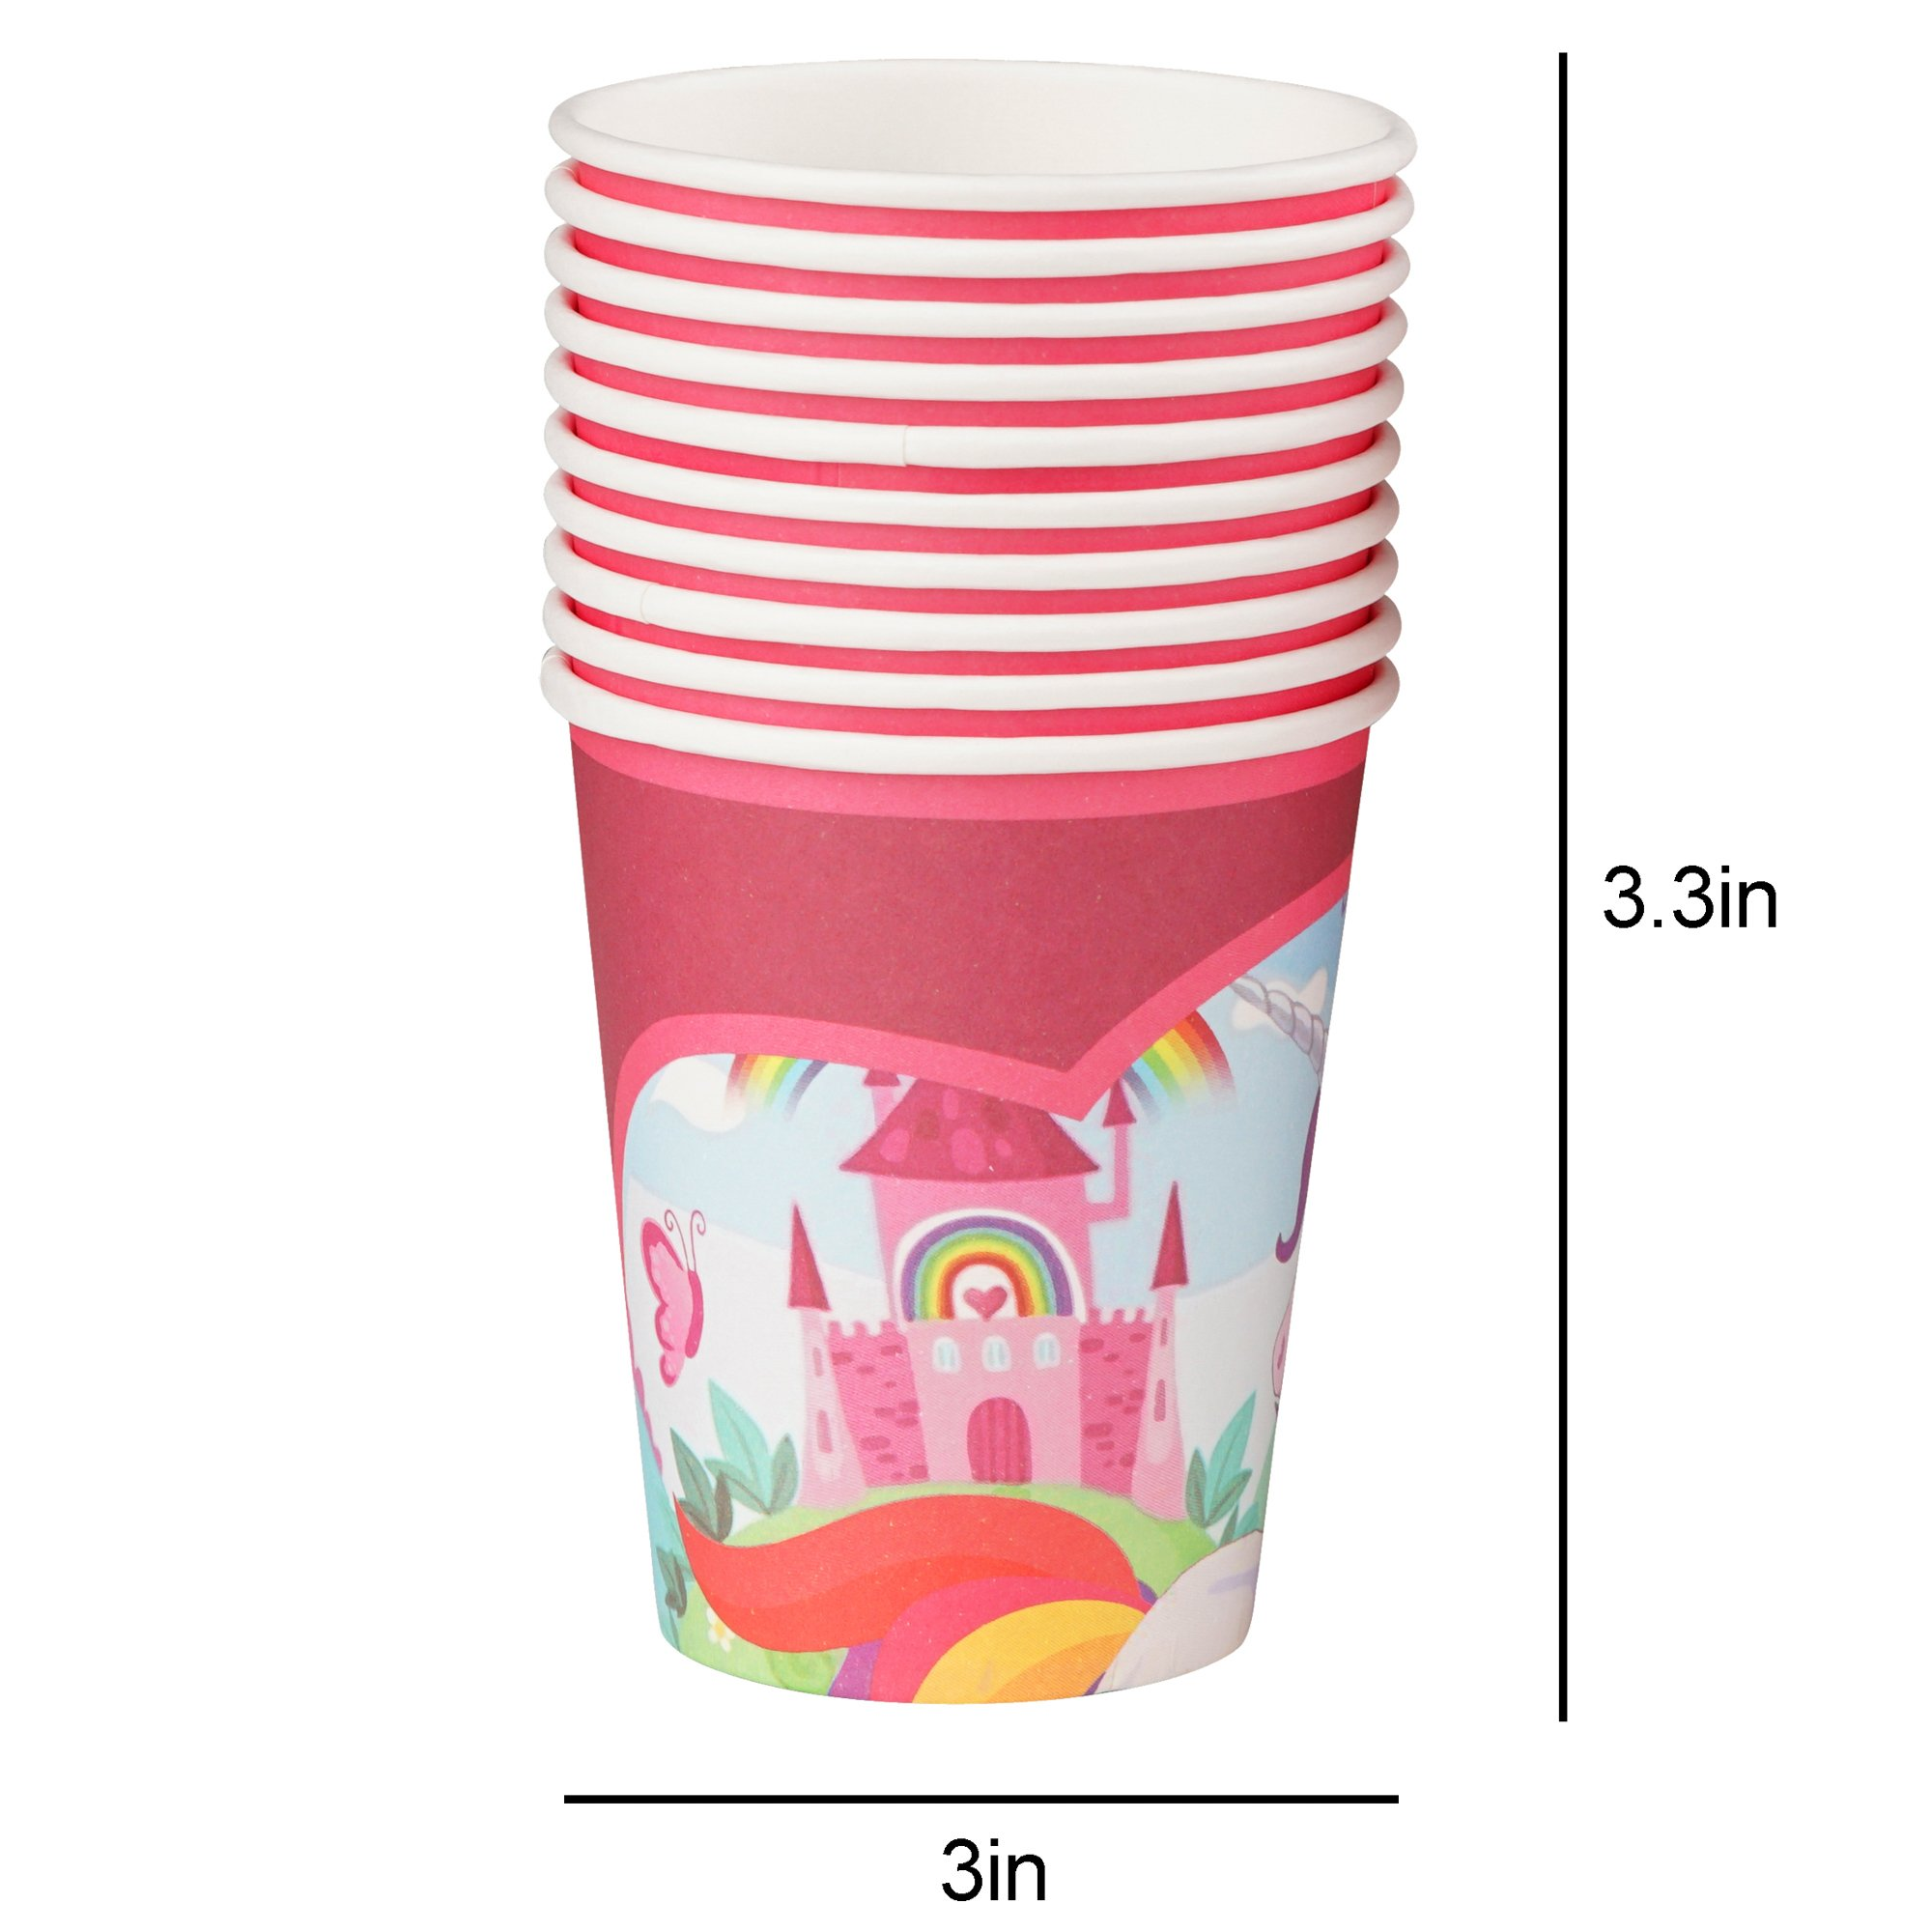 82 Piece Unicorn Party Supplies Set Including Banner, Plates, Cups, Napkins and Tablecloth, Serves 20 by Scale Rank (Image #5)